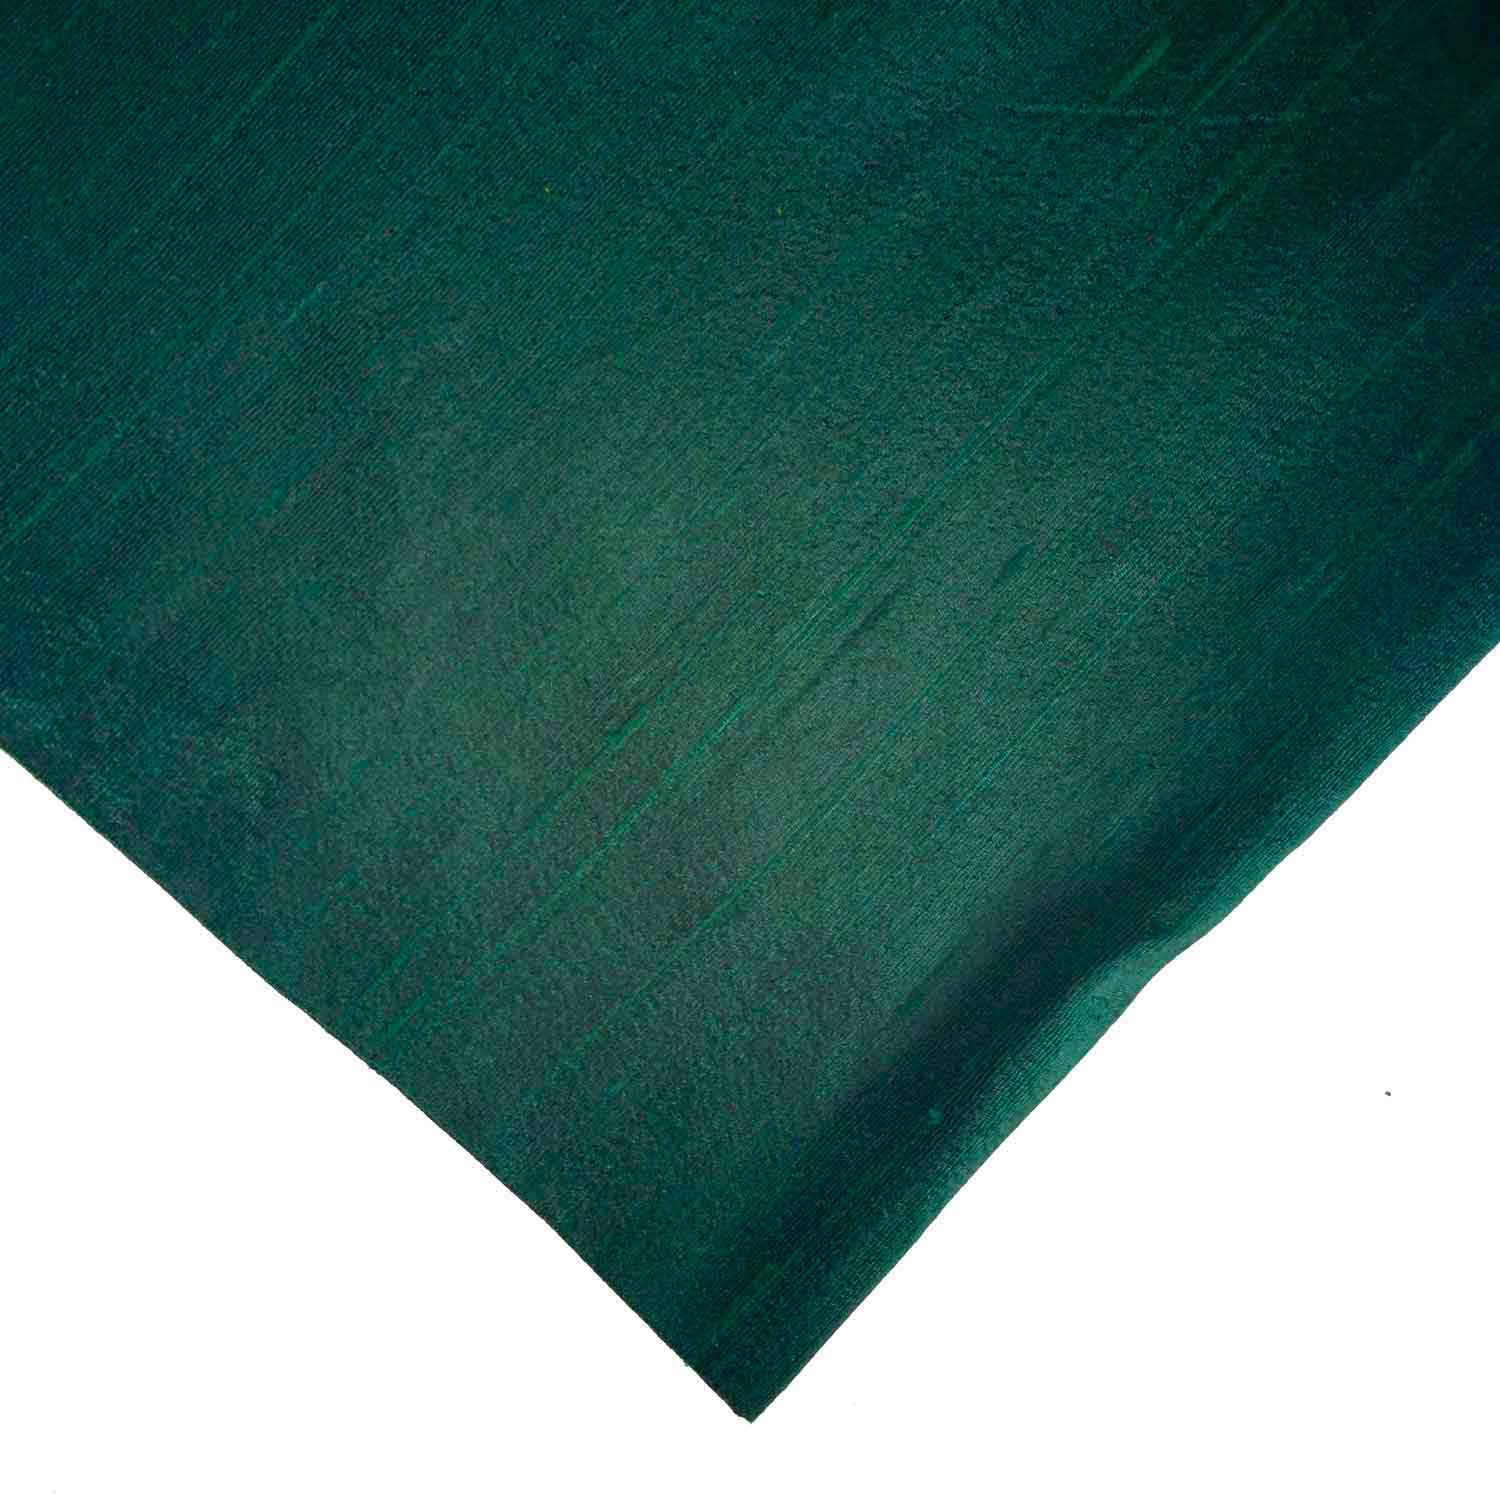 Forest Green Pure Raw Silk Fabric Desicrafts